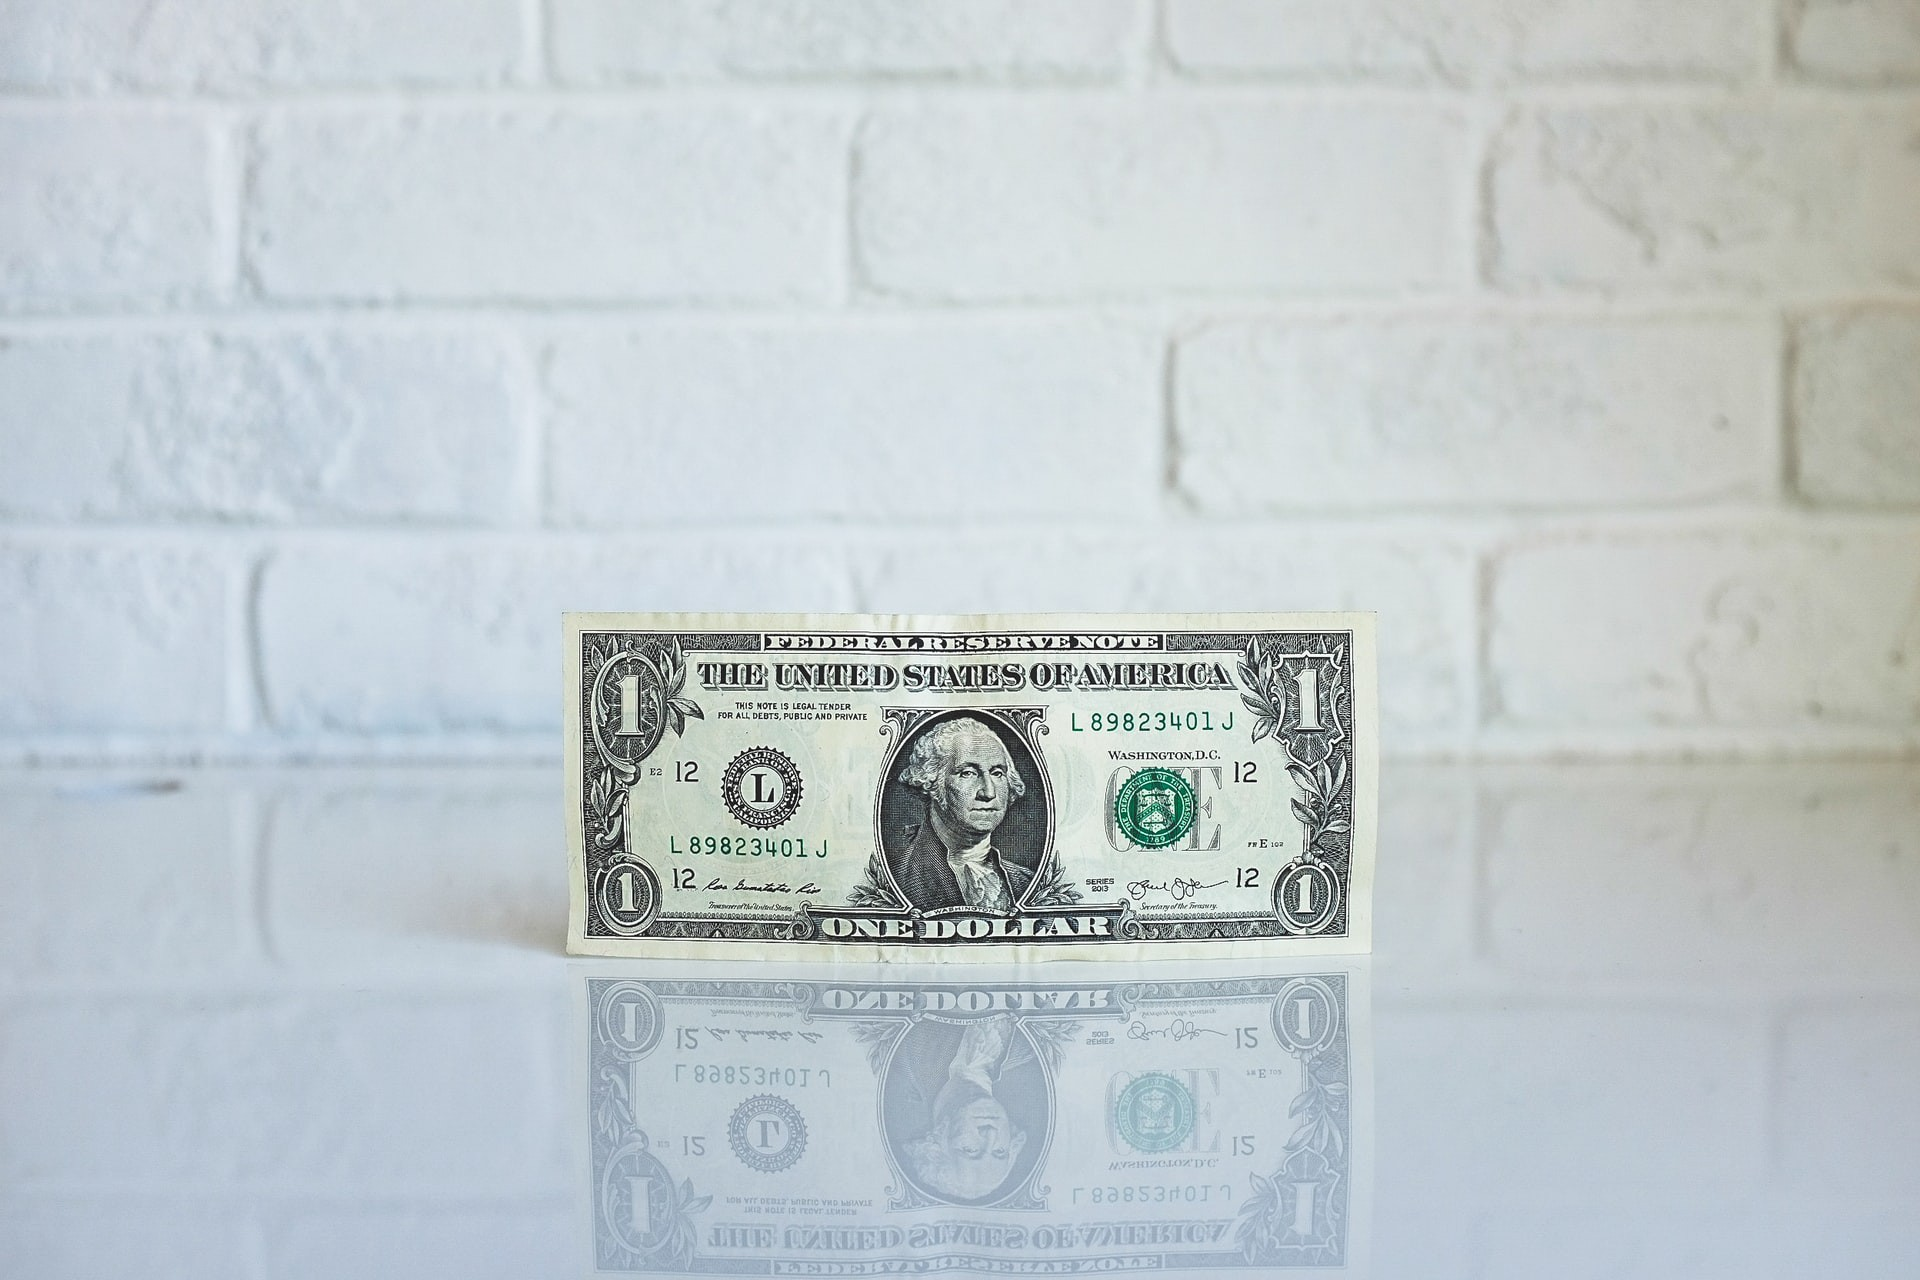 A single dollar bill in front of a white brick wall